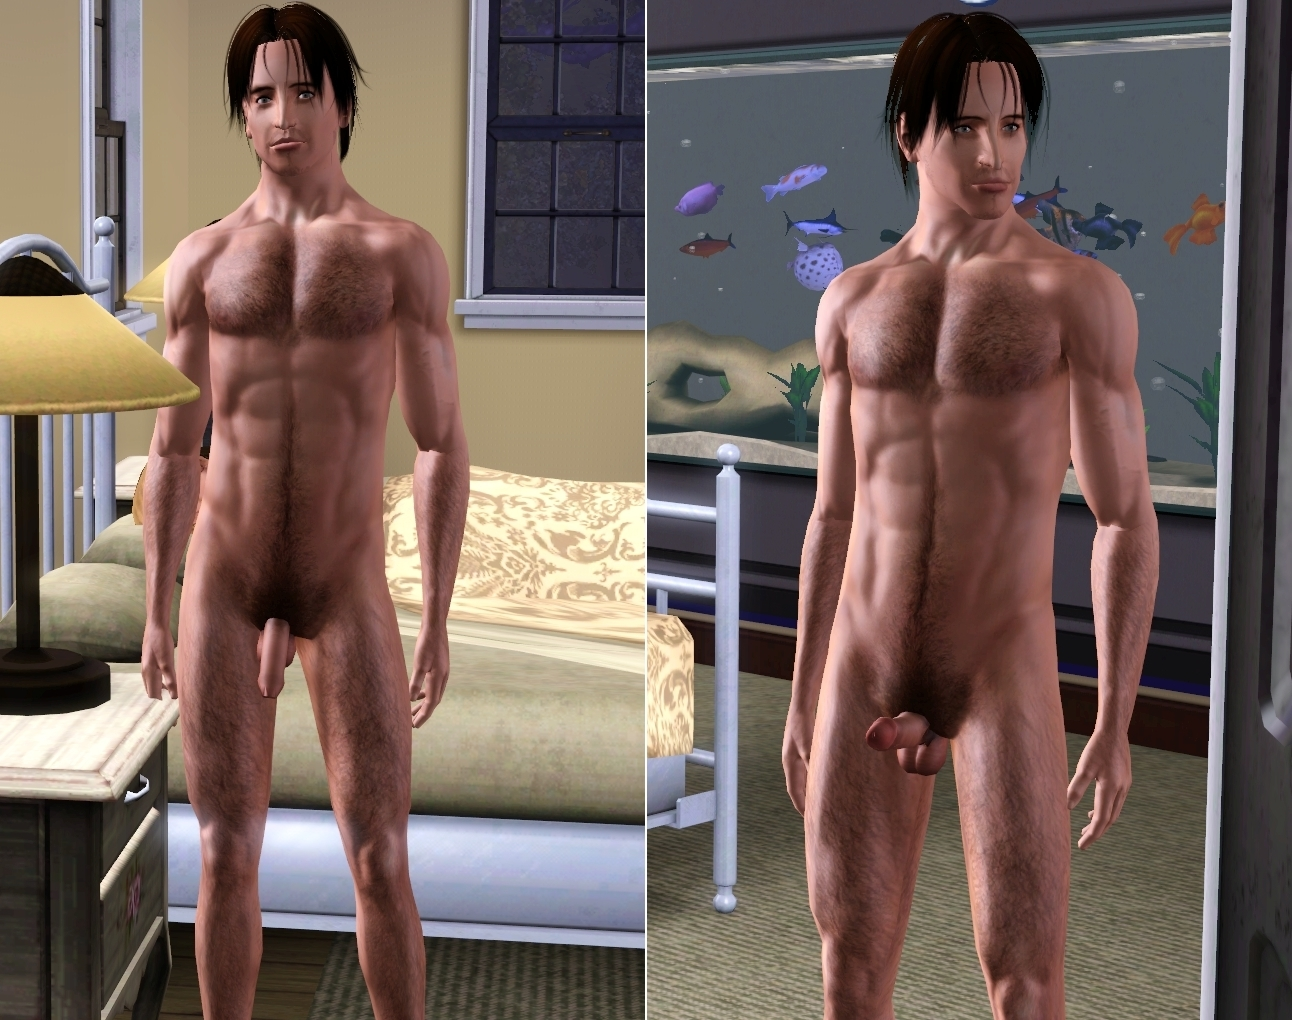 The sims super nude patch hentia pics